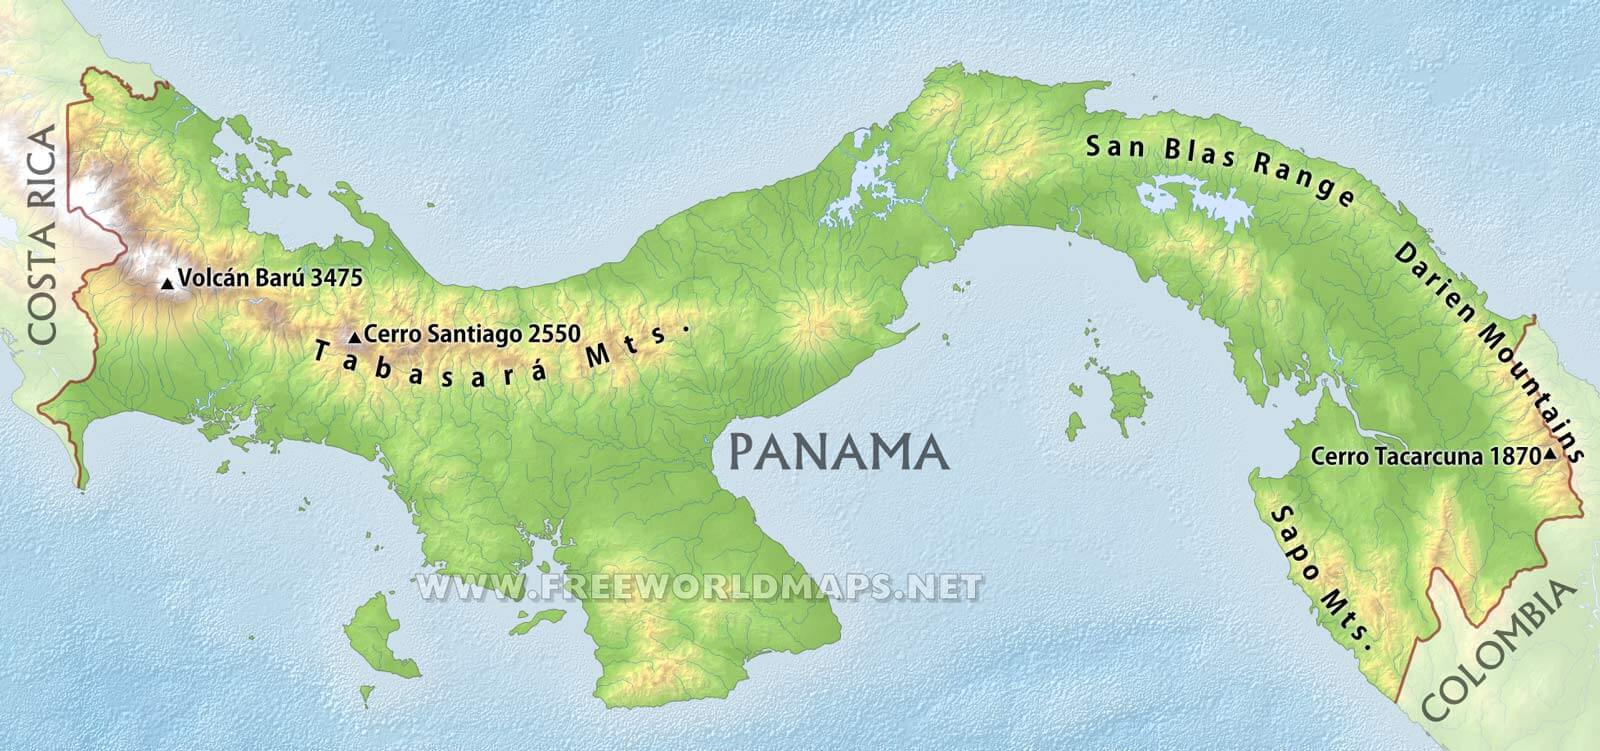 south america landform map with Map on Landforms besides Jordan Physical Map additionally Morocco Physical Map moreover Kenya Physical Map together with Best Beaches In South Carolina.